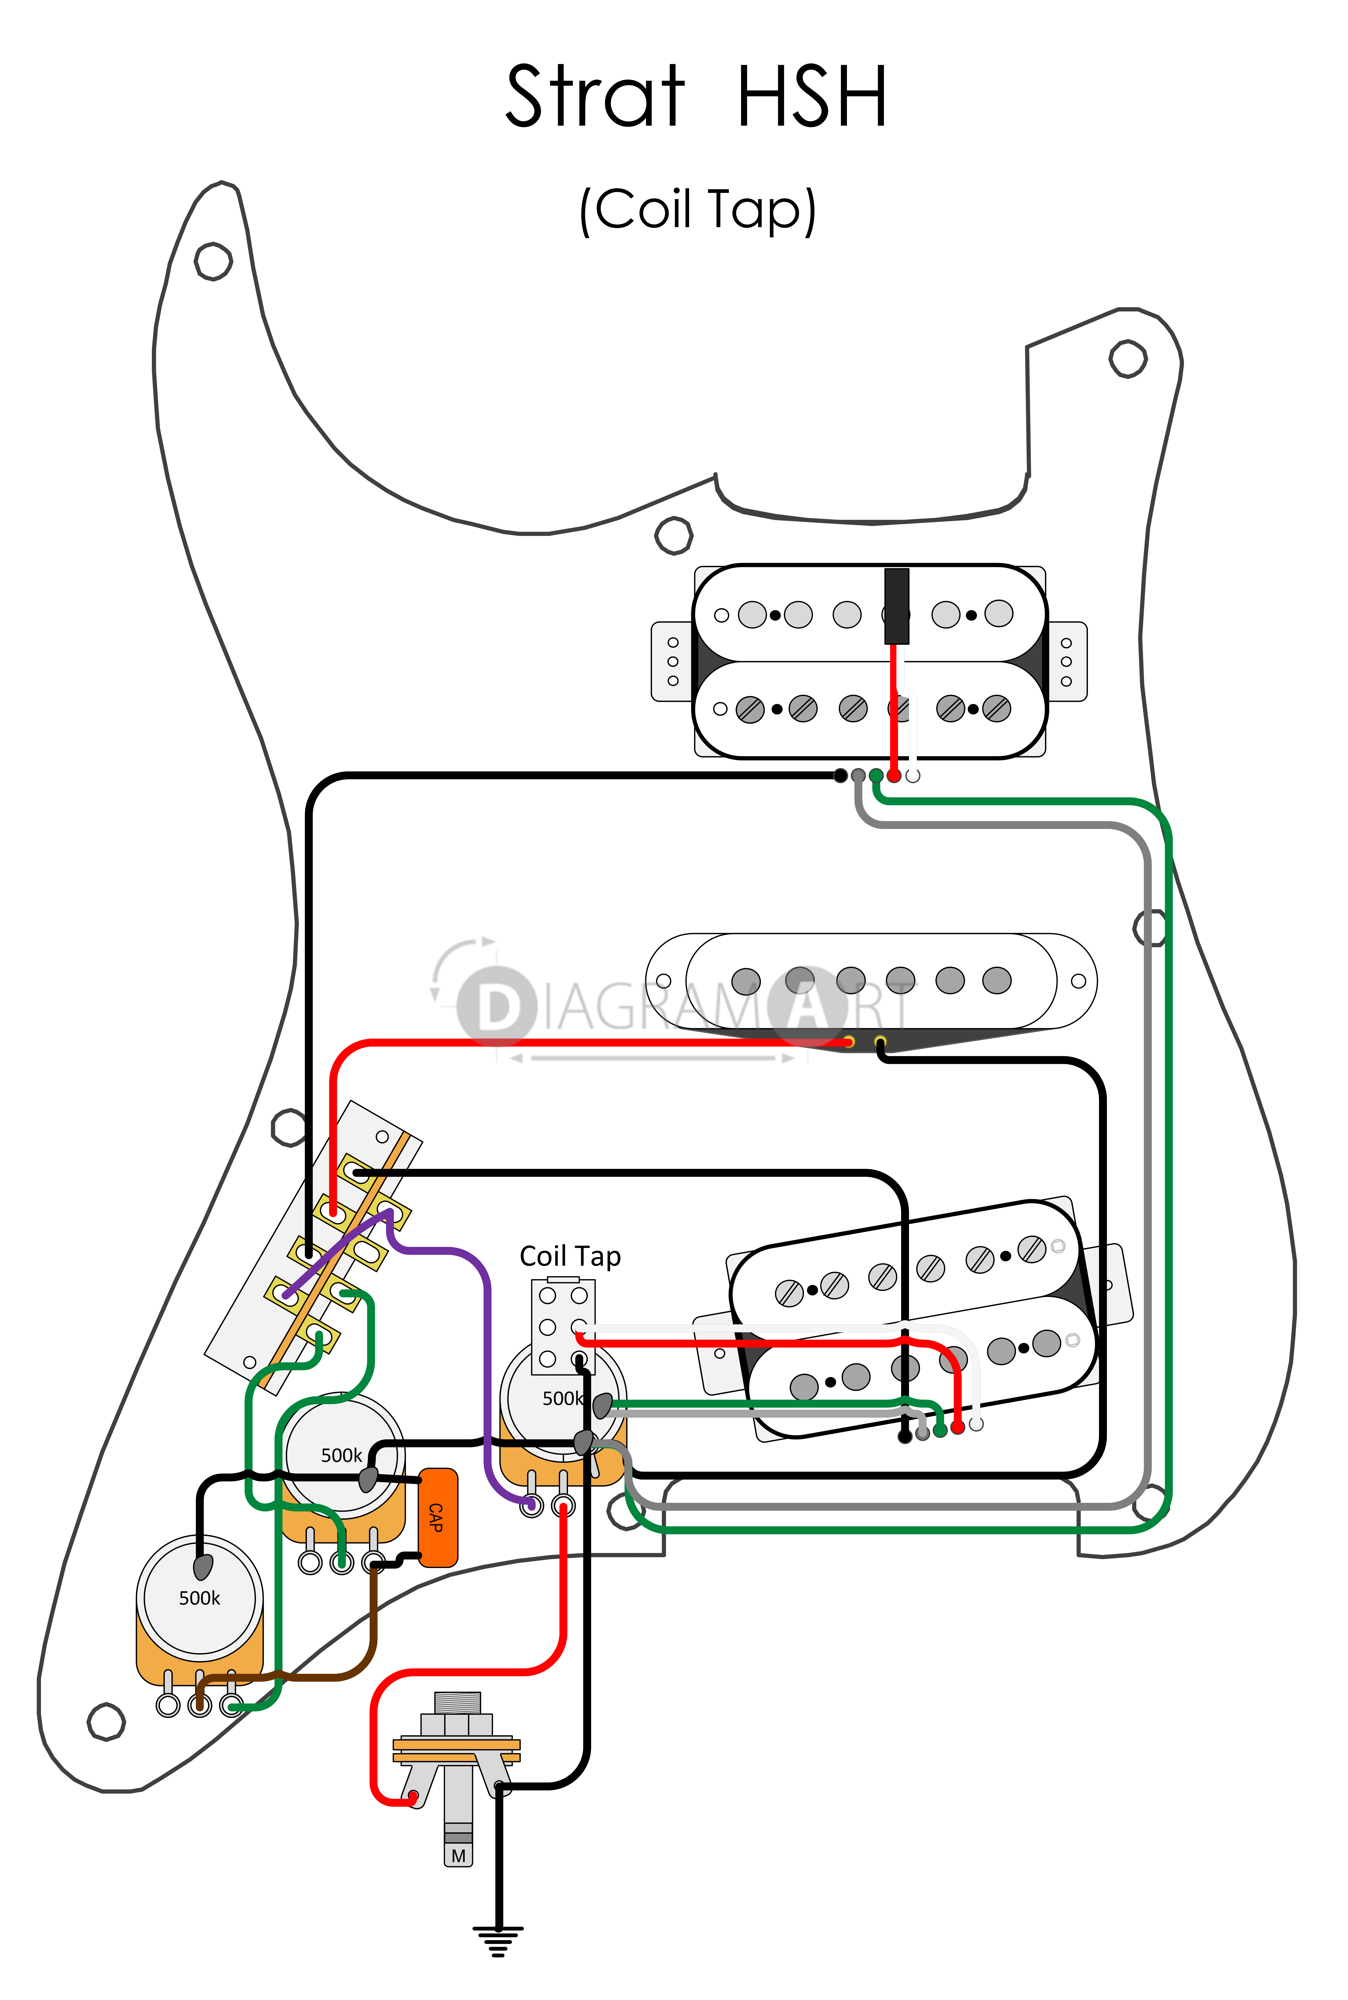 Free Download Hsh Wiring Diagram Electrical Diagrams Gsr205 Wire Prestige Trusted Seymour Duncan For Fender